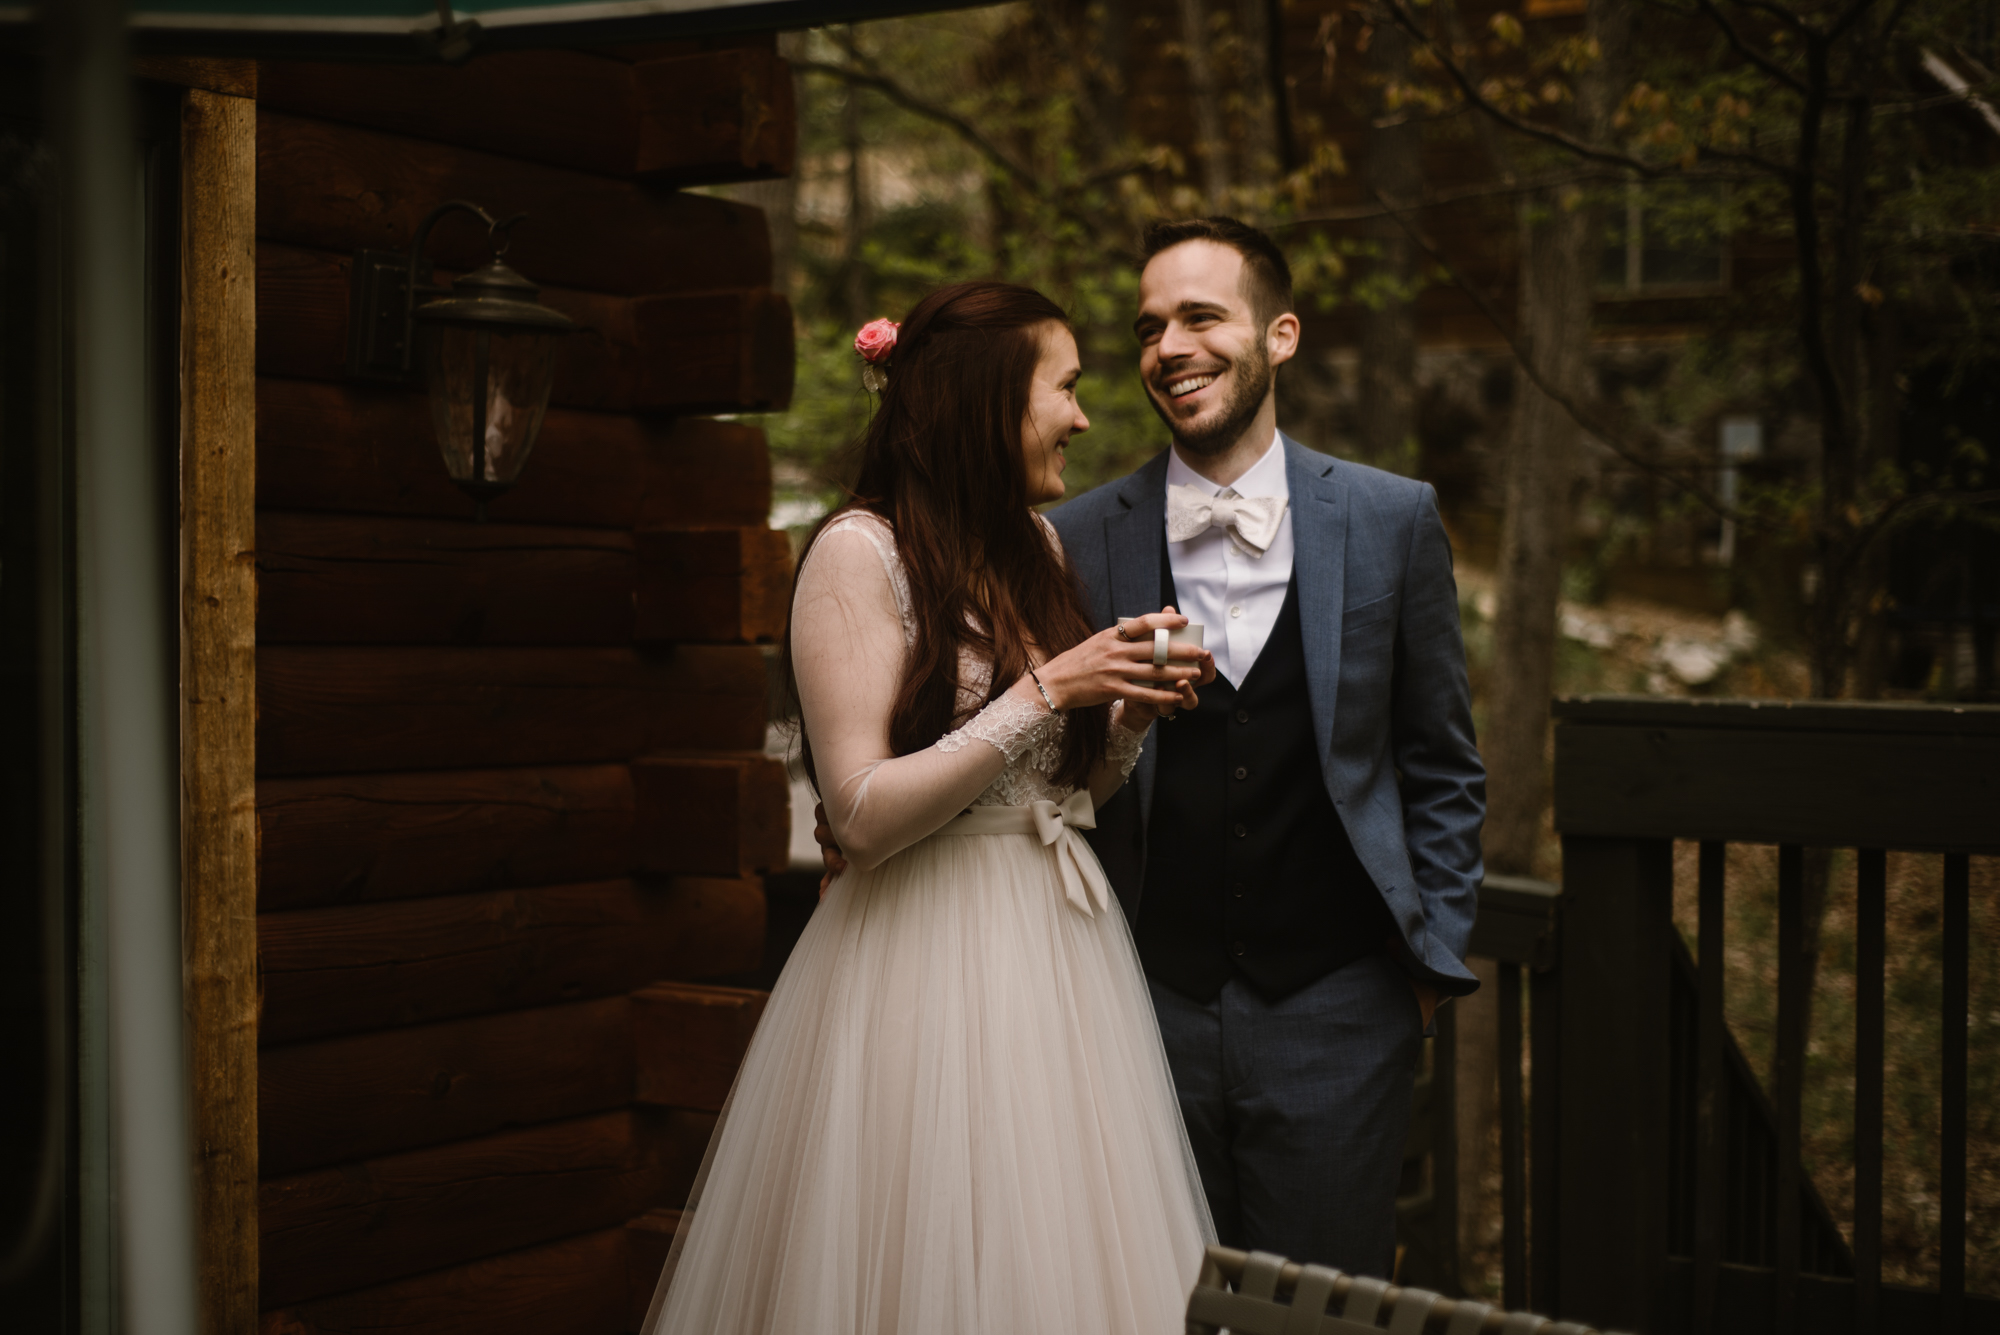 Paula and Andrew - Small Adventurous Wedding in Shenandoah National Park - Blue Ridge Mountain Wedding - White Sails Creative - Mountain Elopement_49.jpg